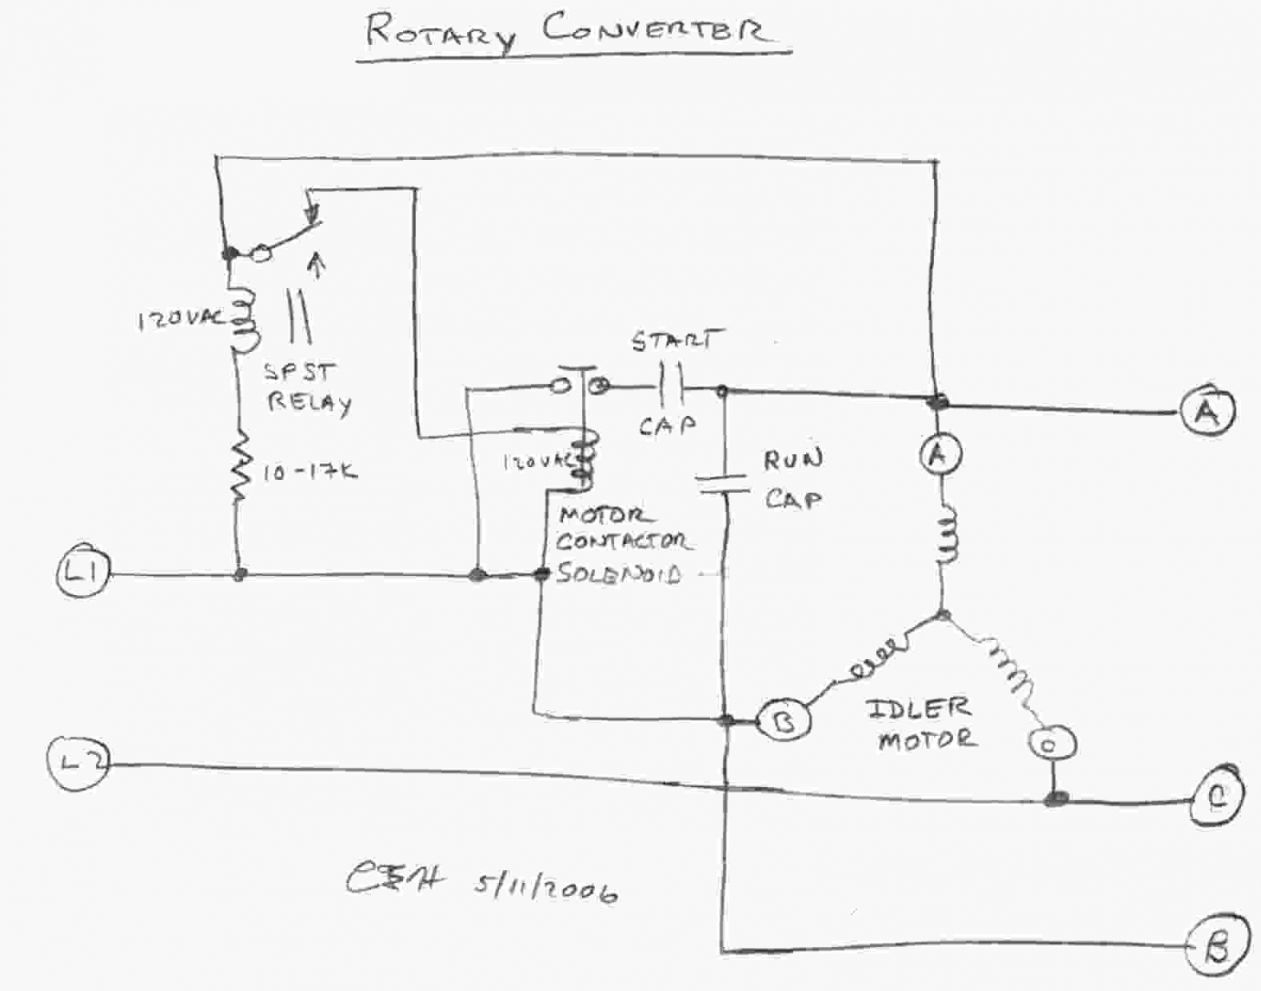 3 phase rotary converter wiring diagram download 3 phase capacitor wiring diagram